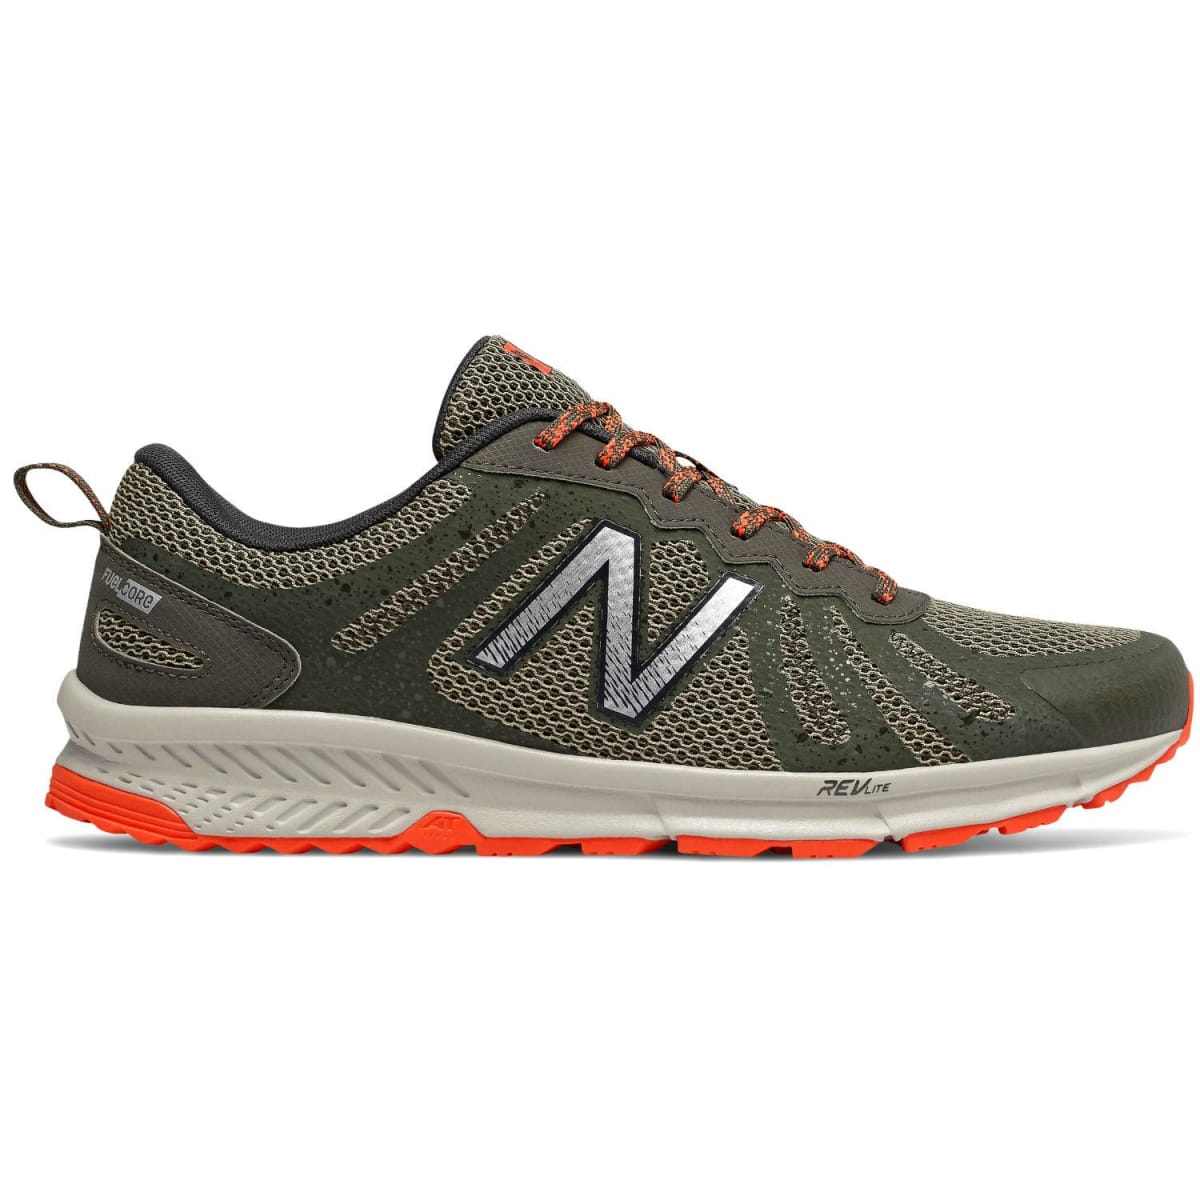 46018e08c Footwear New Balance Products | Sportsmans Warehouse